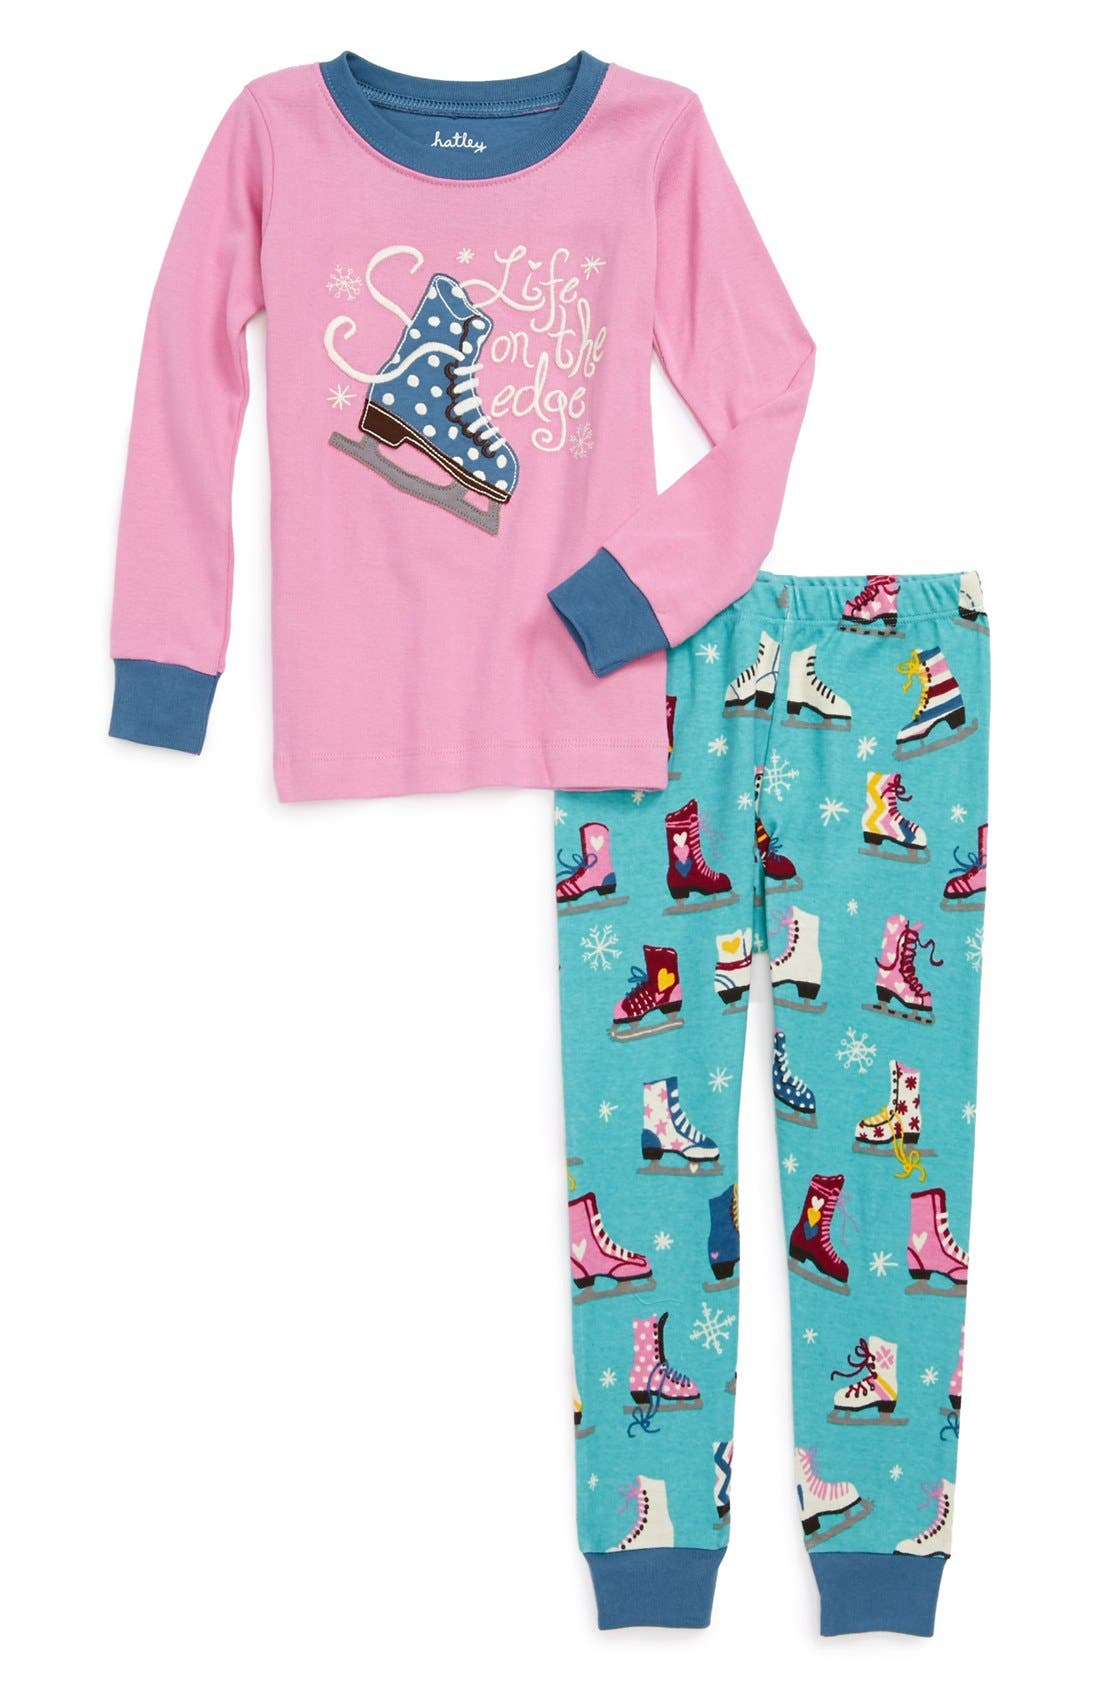 Alternate Image 1 Selected - Hatley 'Life on the Edge' Two-Piece Fitted Pajamas (Toddler Girls)